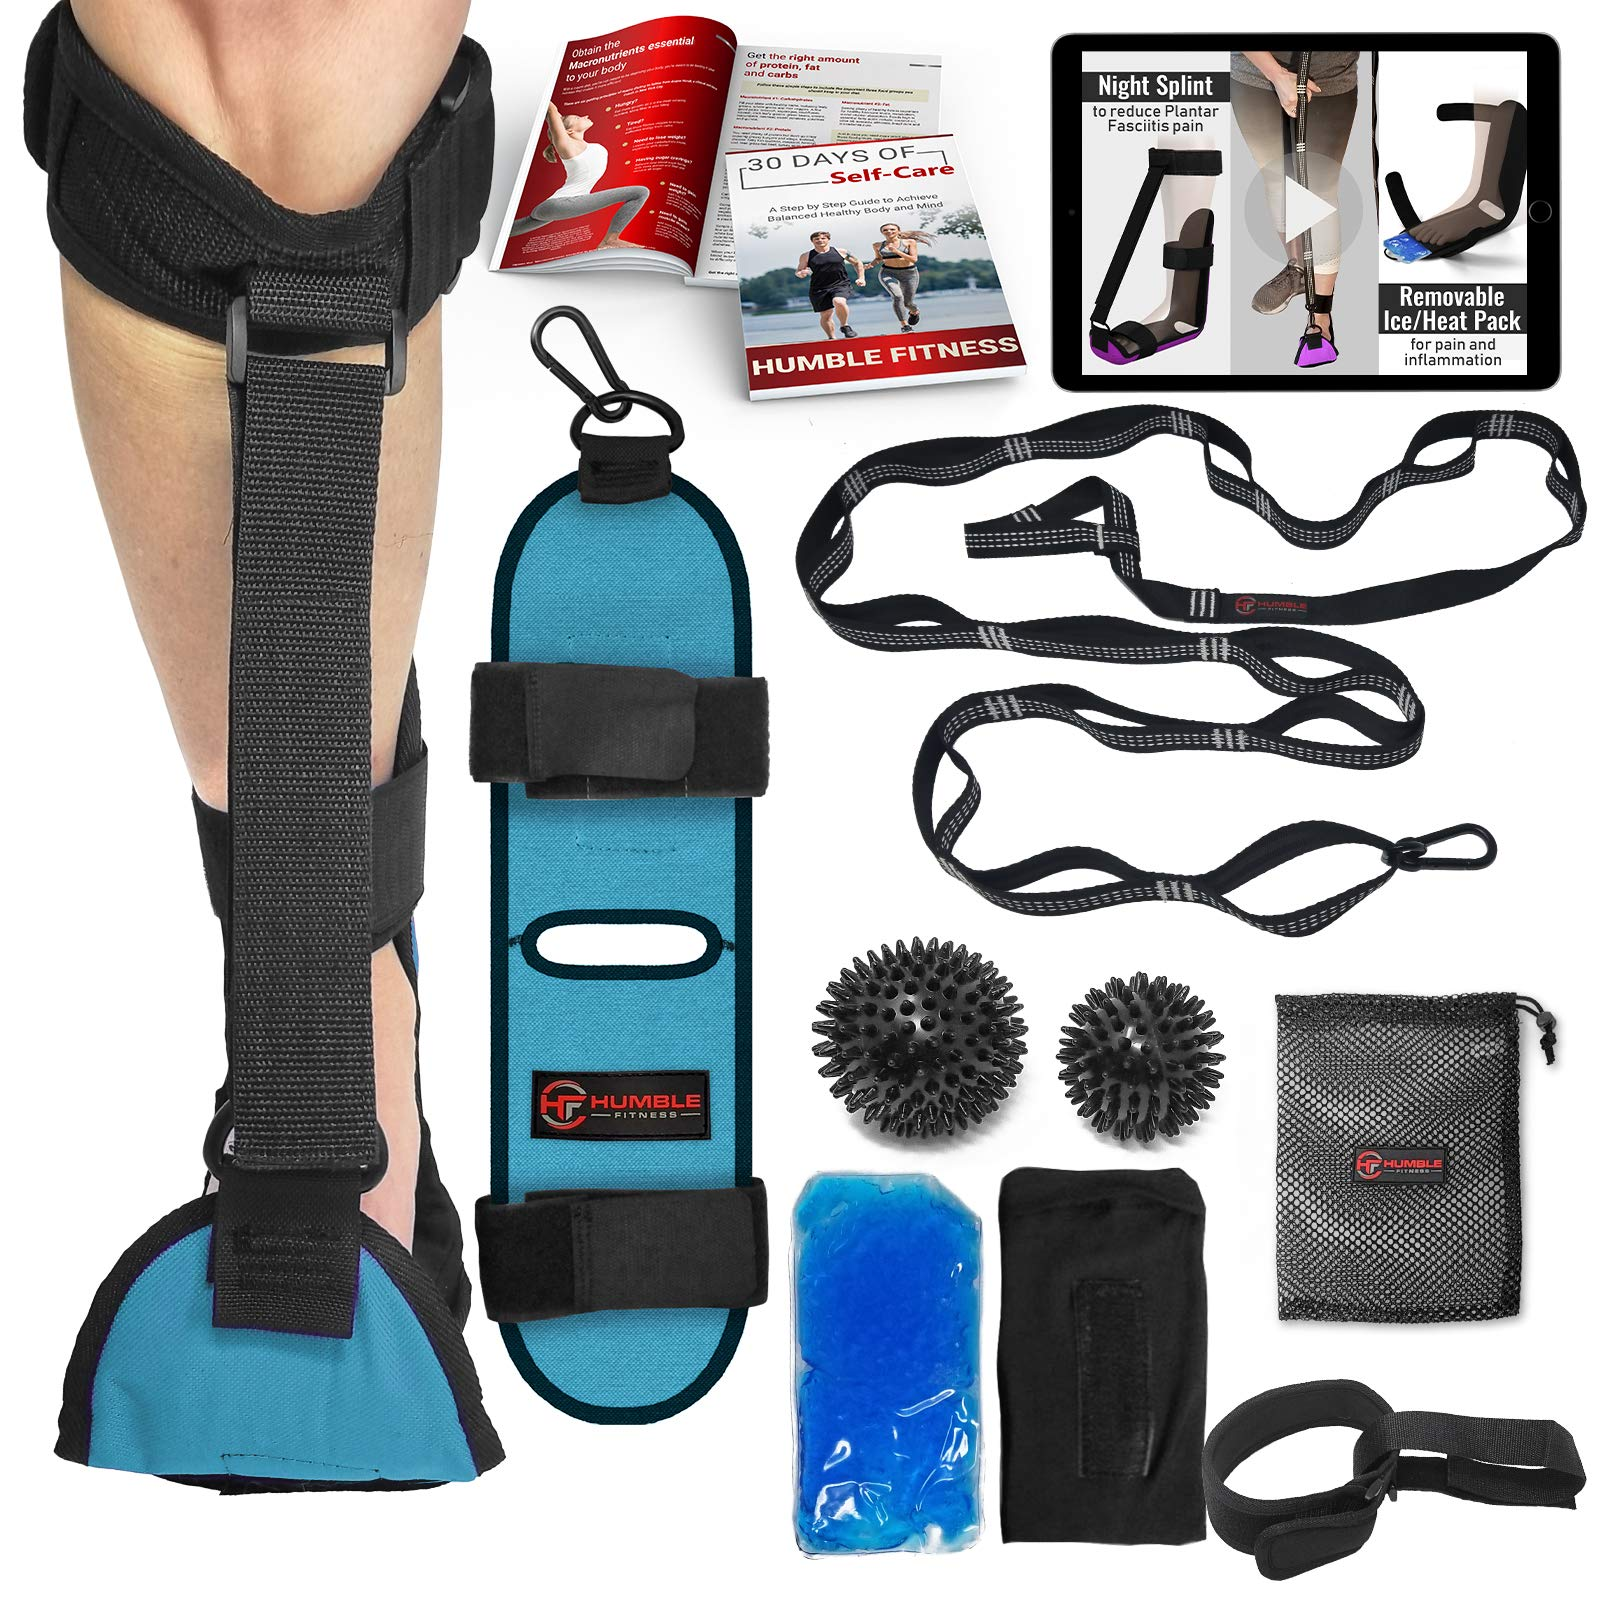 Humble Fitness Plantar Fasciitis Night Splint & Stretching Support Brace -14ft Stretch Strap, 2 Massage Balls, Ice/Heat Pack, Achilles Tendonitis Treatment for Planters Faciatis Men and Woman by Humble Fitness